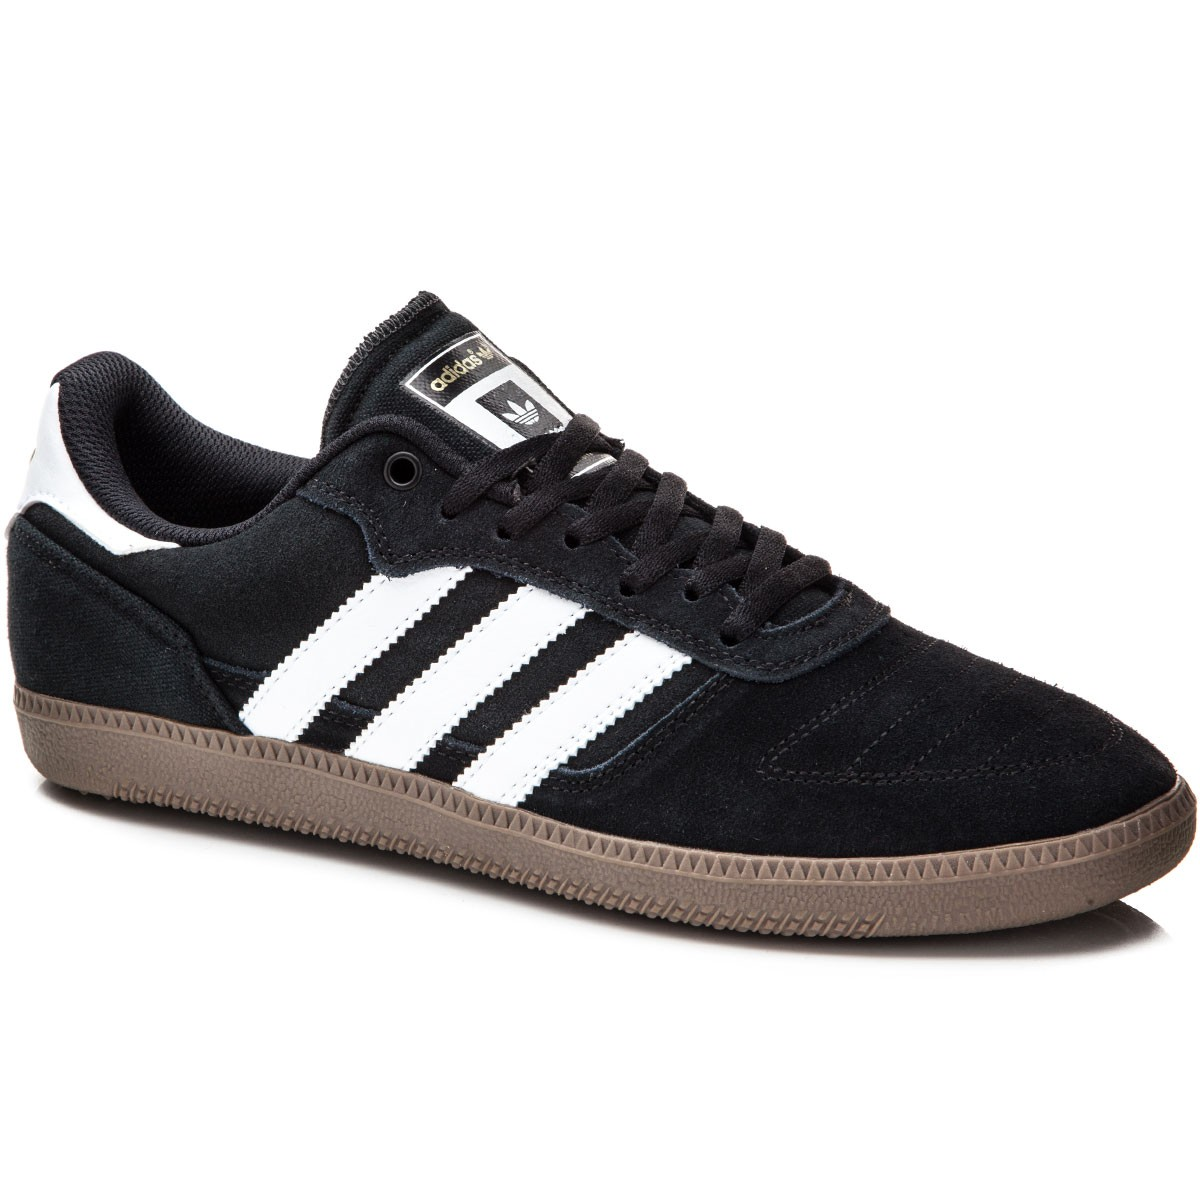 Adidas Skate Copa Shoes - Black/White/White - 7.5